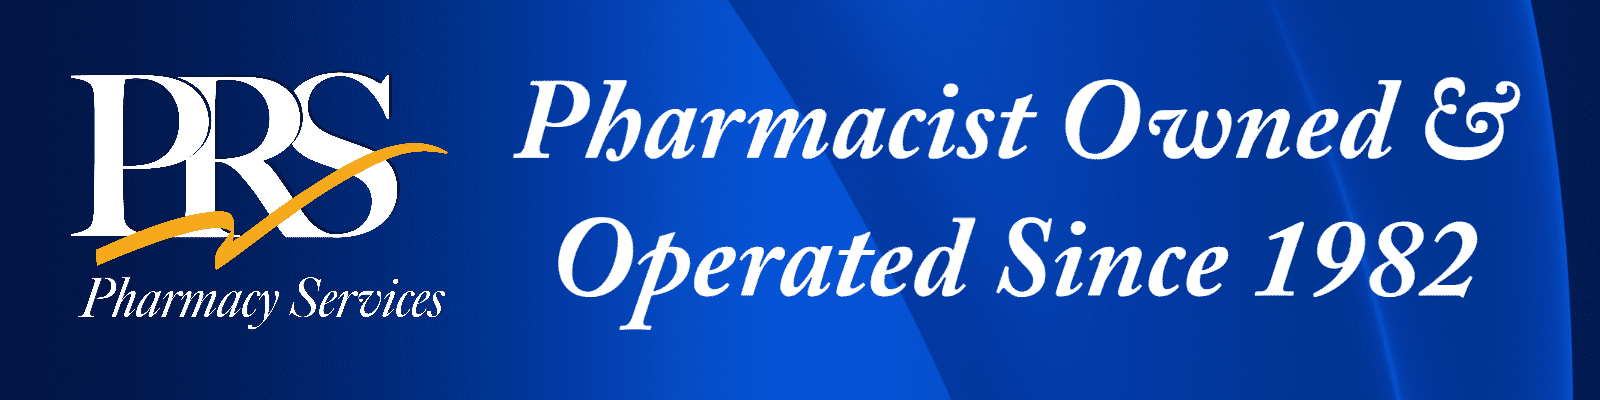 independent pharmacy consultants, pharmacy appraisals, selling a pharmacy, buying a pharmacy, pharmacy compliance programs